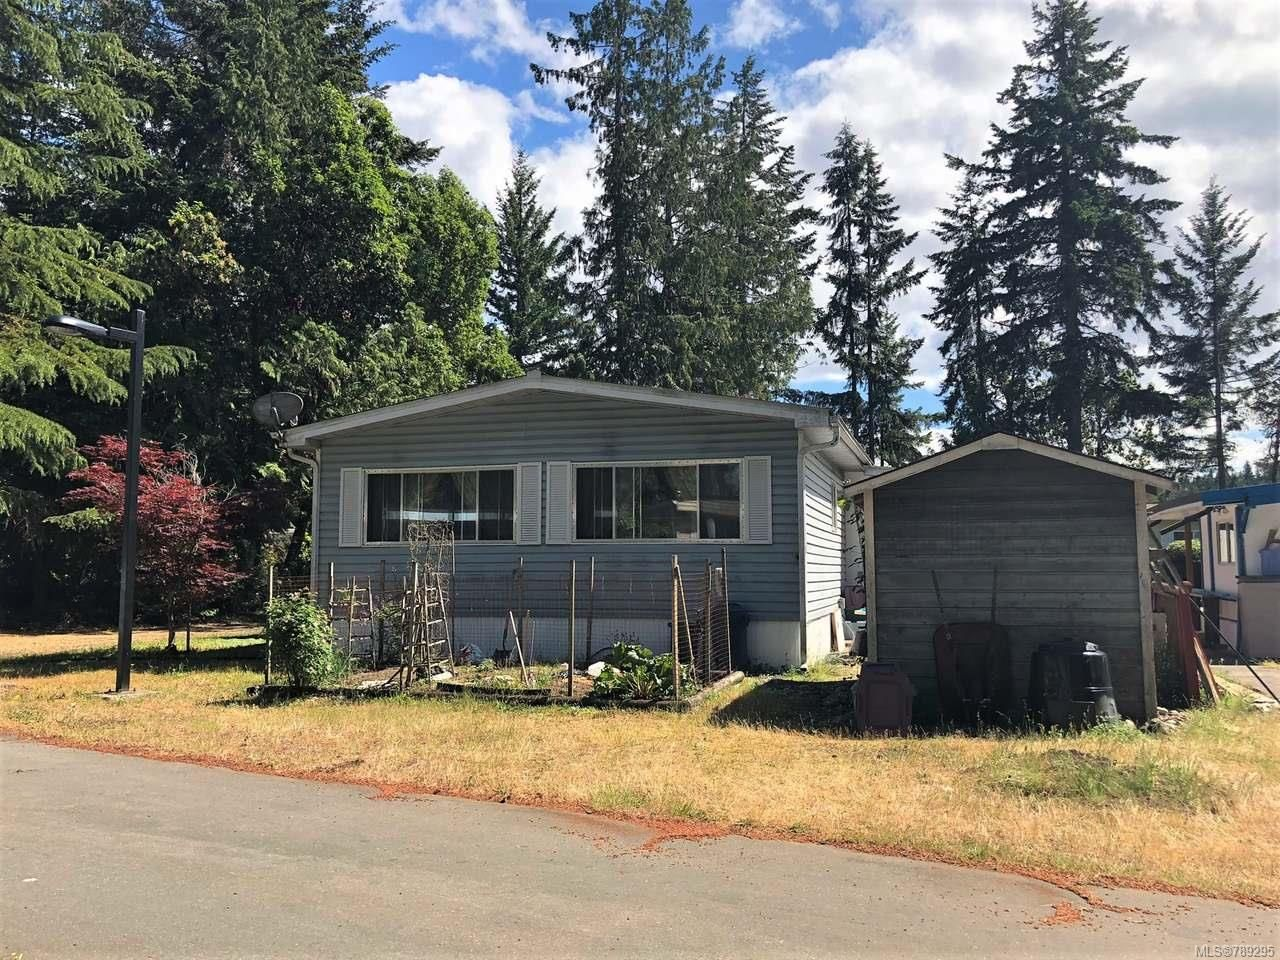 Main Photo: 68 1247 ARBUTUS ROAD in PARKSVILLE: PQ Parksville Manufactured Home for sale (Parksville/Qualicum)  : MLS®# 789295